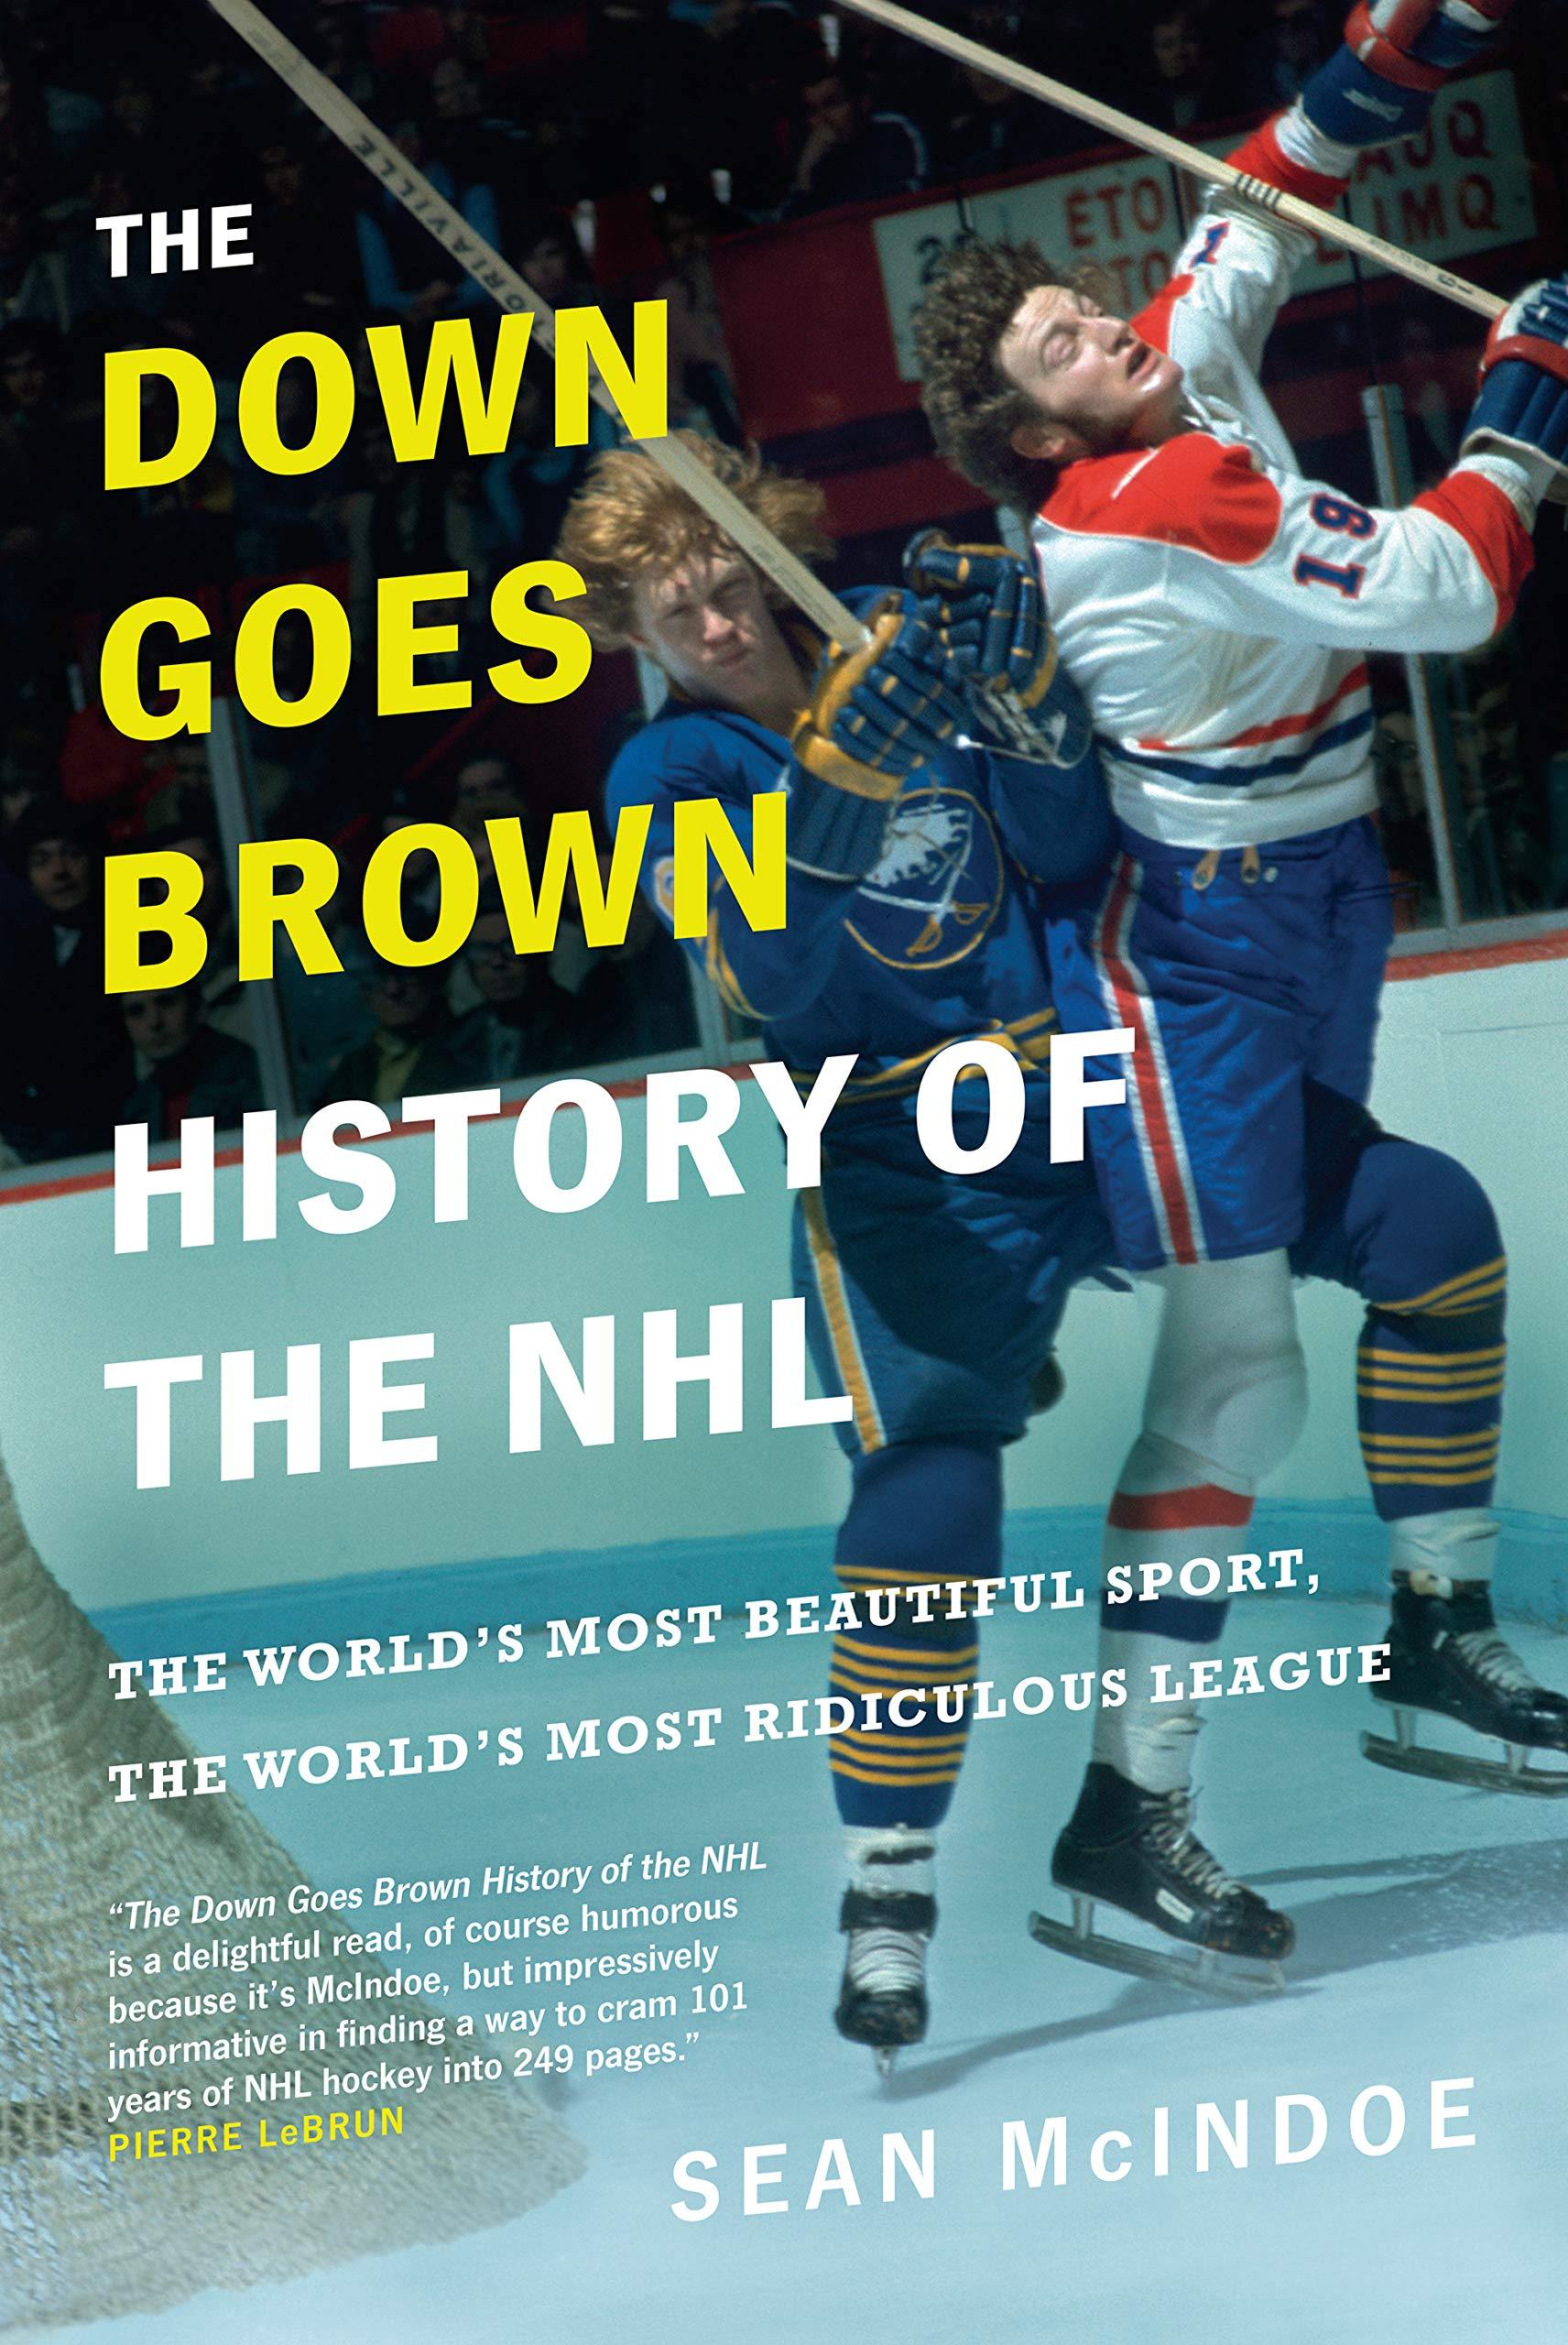 The Down Goes Brown History of the NHL: The World's Most Beautiful Sport the World's Most Ridiculous League (English Edition)